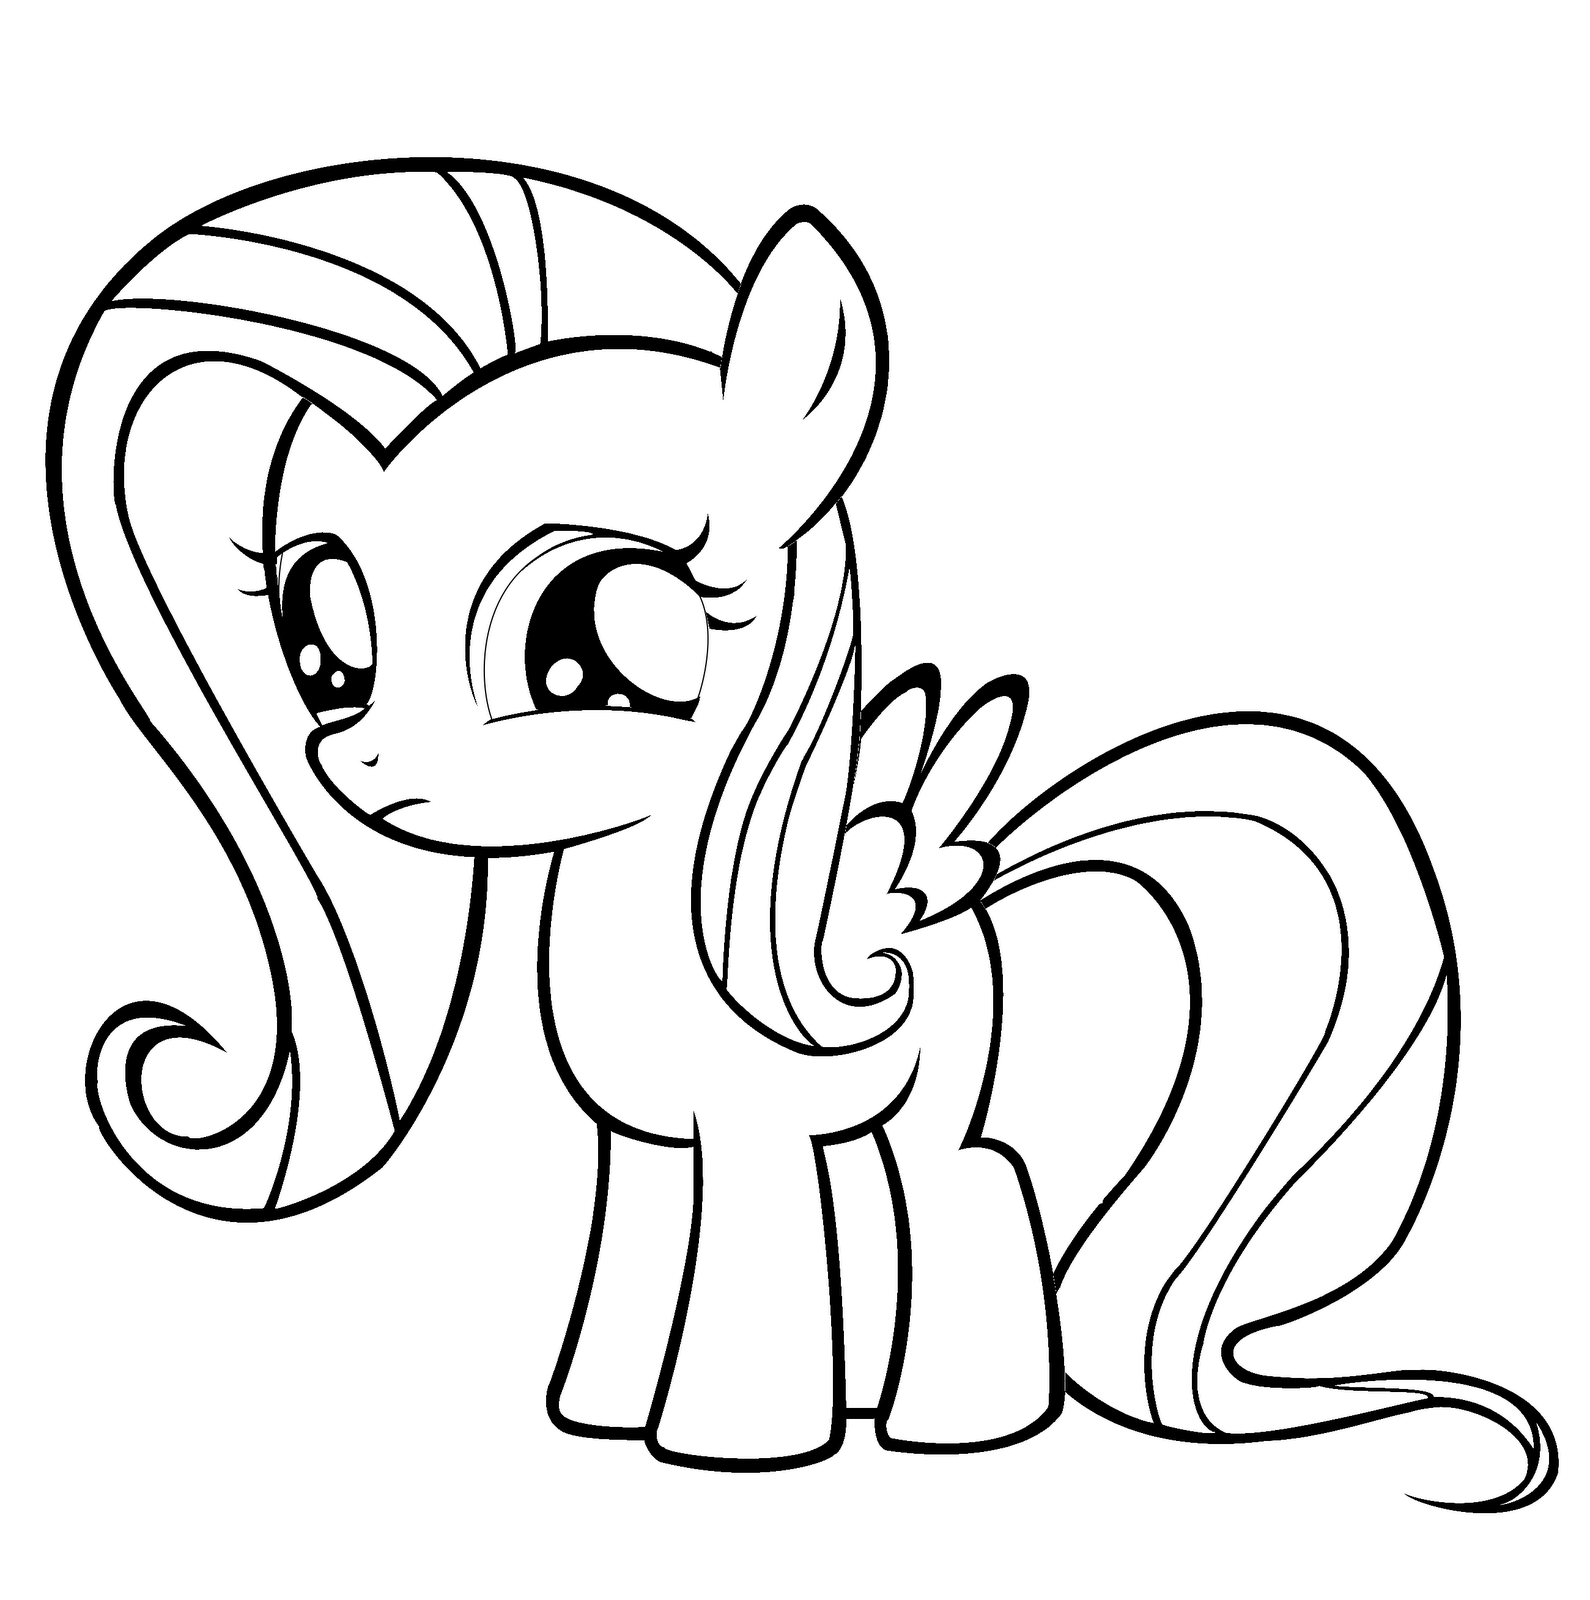 my little pony colouring pictures my little pony coloring page mlp scootaloo my little pictures little pony my colouring